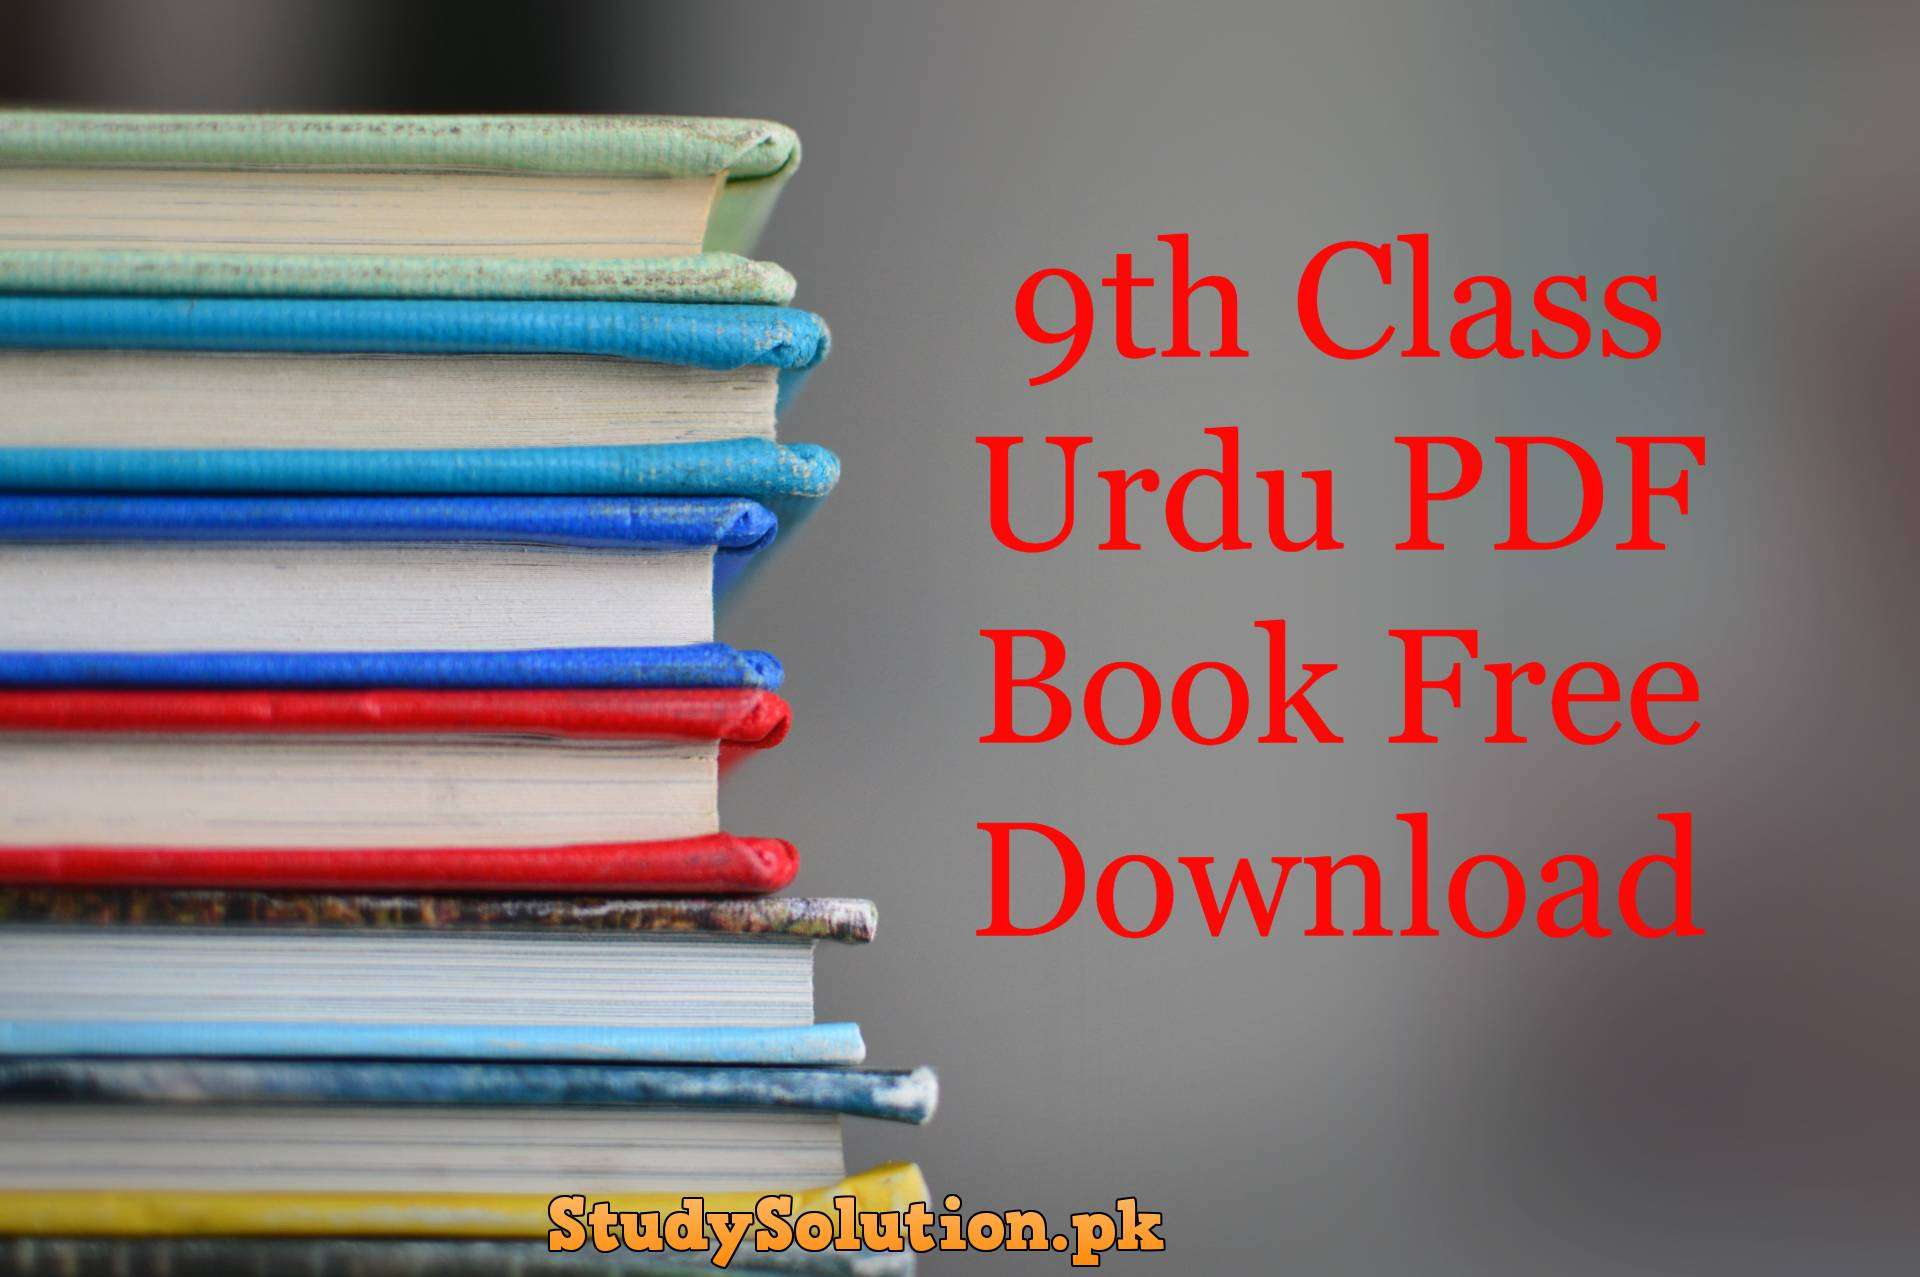 9th Class Urdu PDF Book Free Download